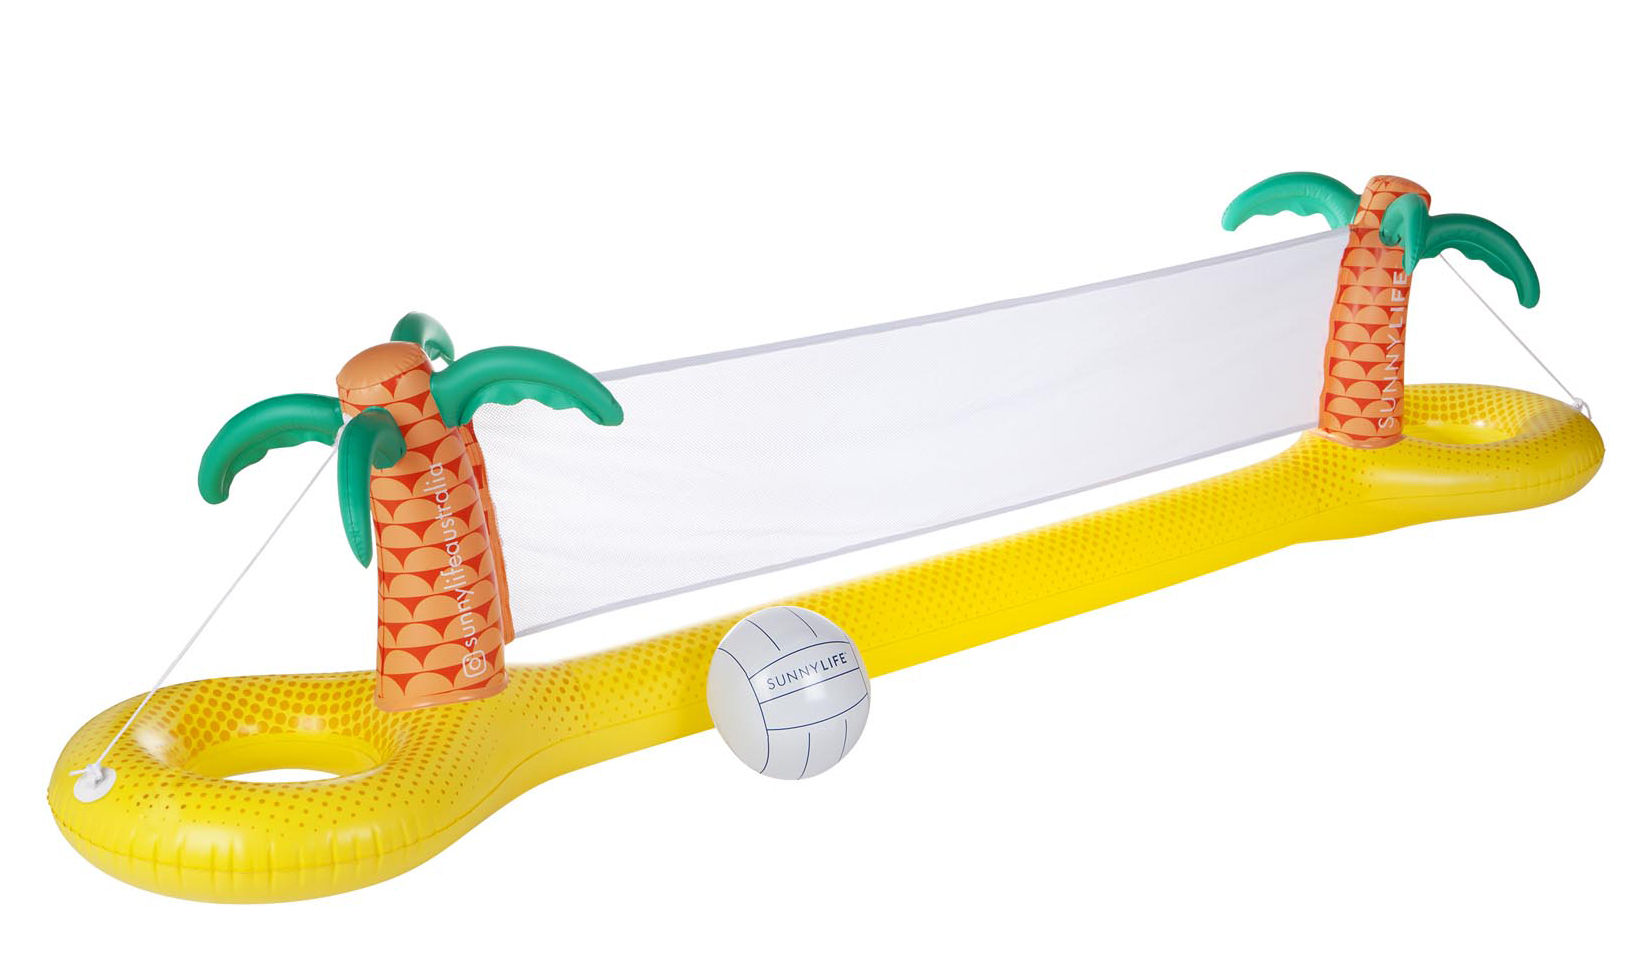 Decoration - Children's Home Accessories - Tropical Inflatable volleyball game - / Floating by Sunnylife - Yellow & green - High resistance PVC